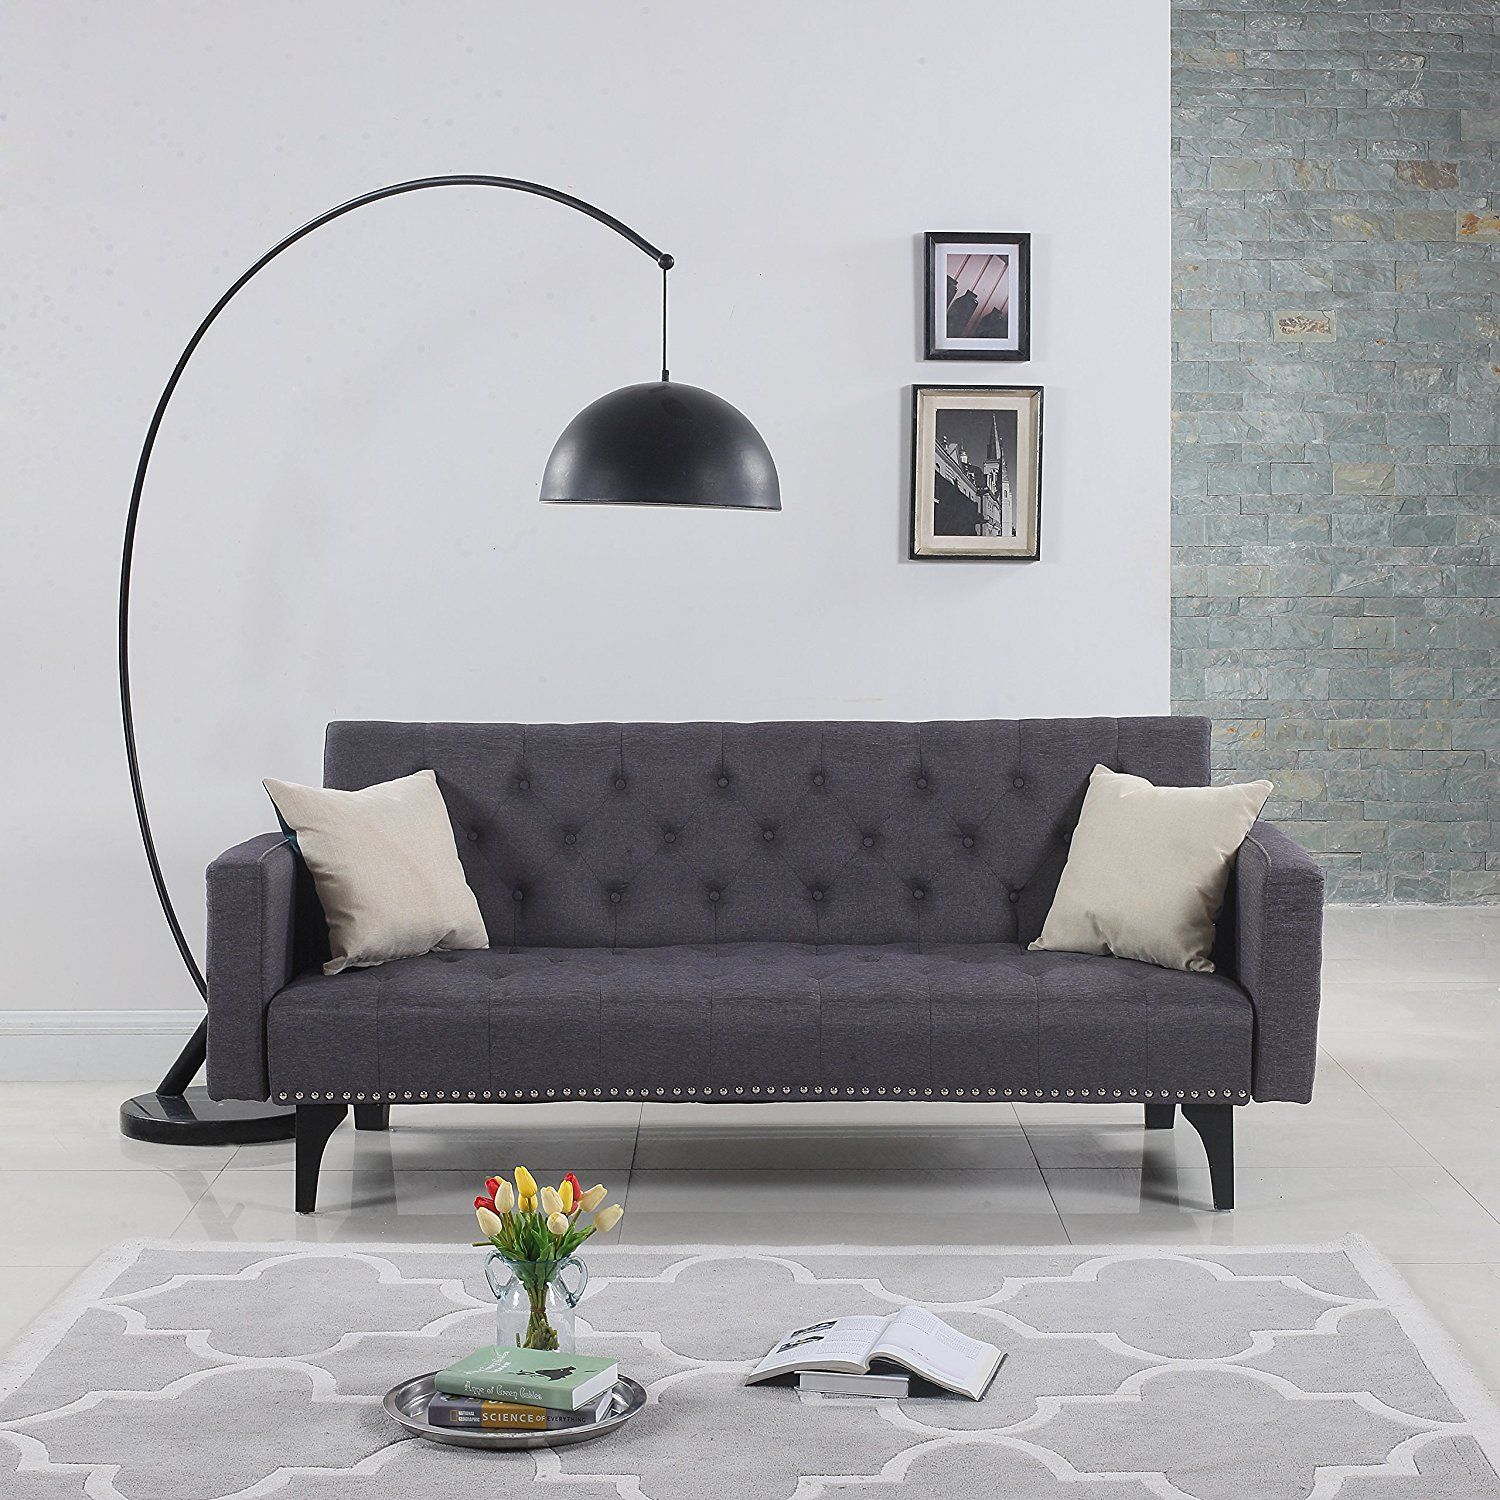 Best Futon Sofa 1) Modern Tufted Fabric